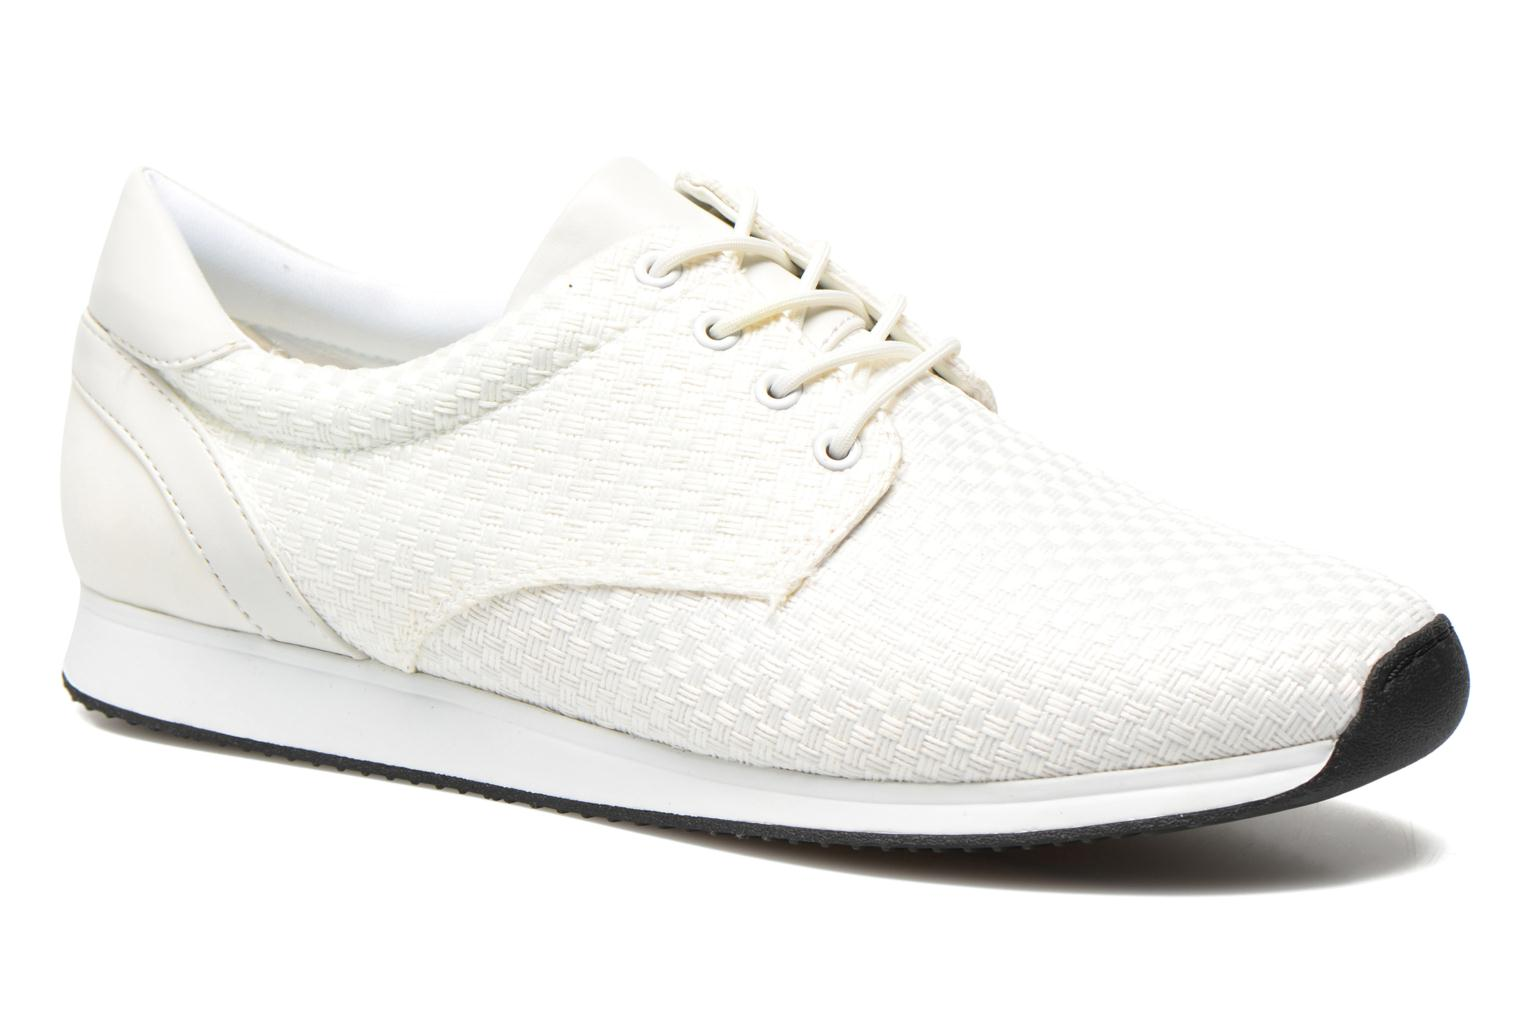 Baskets Vagabond Shoemakers Kasai 4125-181 Blanc vue détail/paire